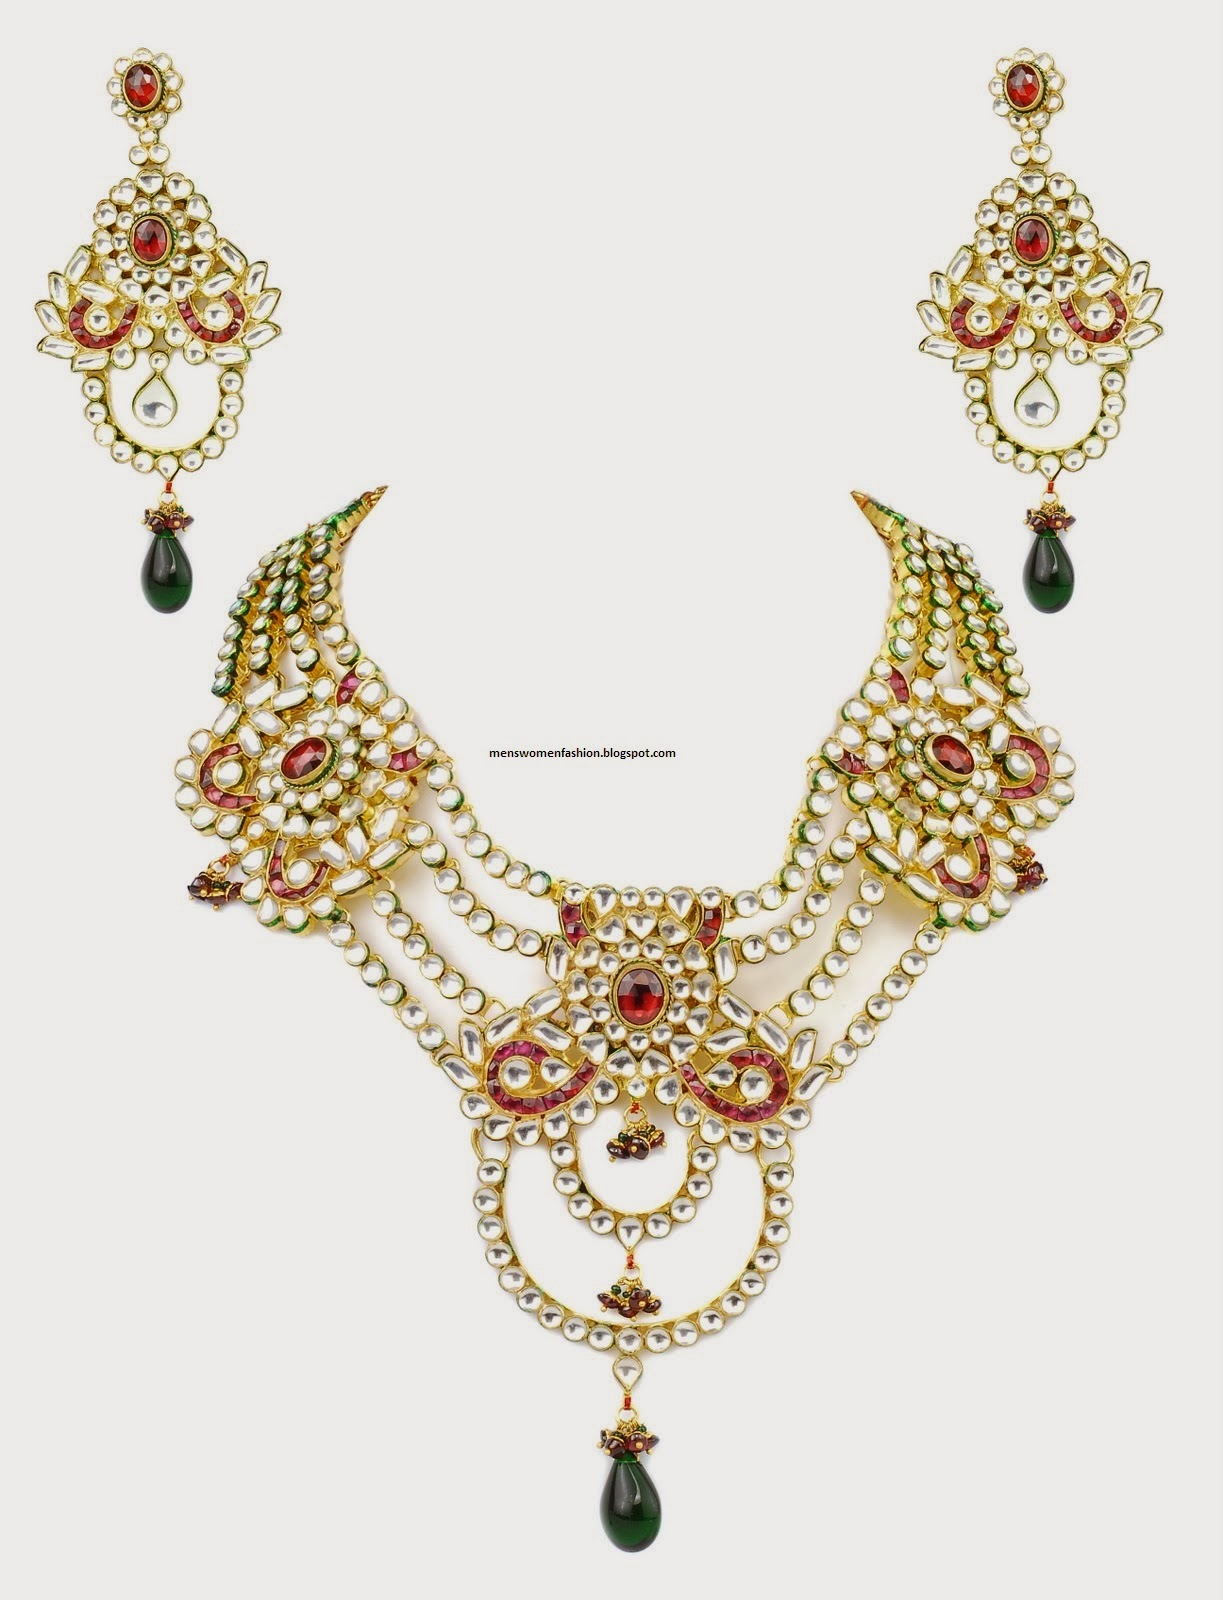 dp online indian stone amazon india women diamonds buy jewellery prices surat low coloured at set in necklace for bangle earring green fashion plated jewelry gold